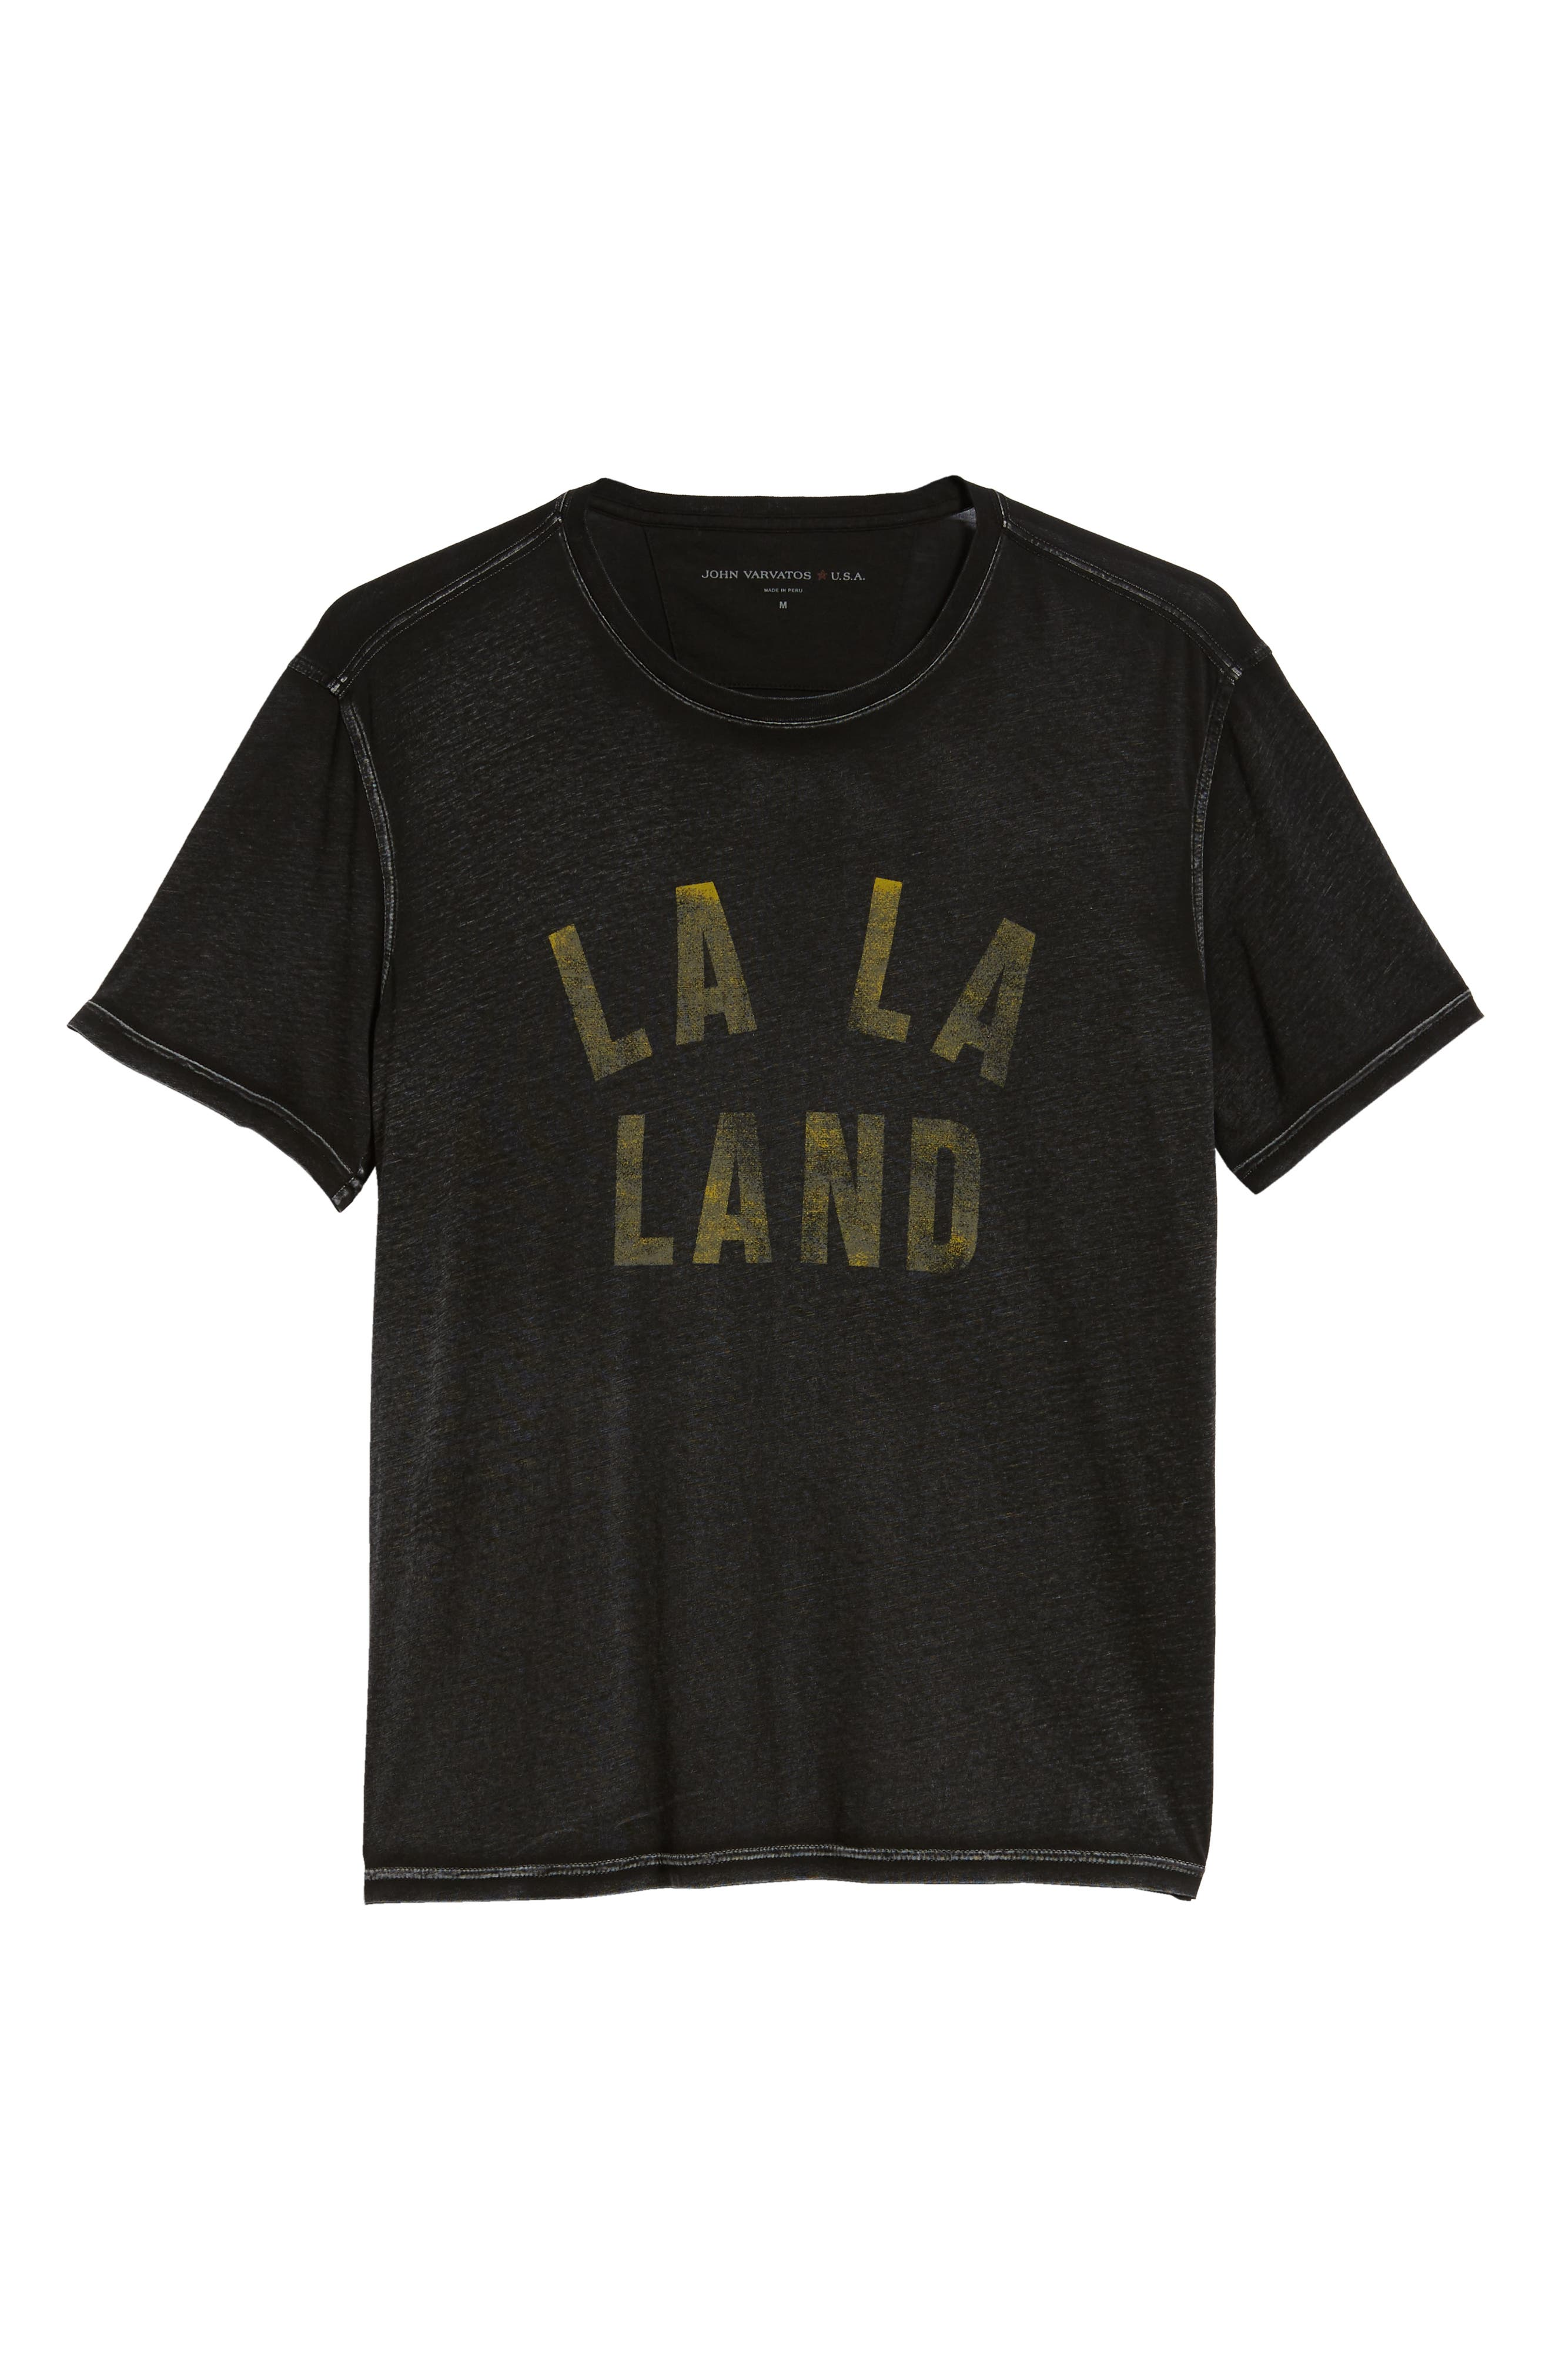 La La Land T-Shirt,                             Alternate thumbnail 6, color,                             020